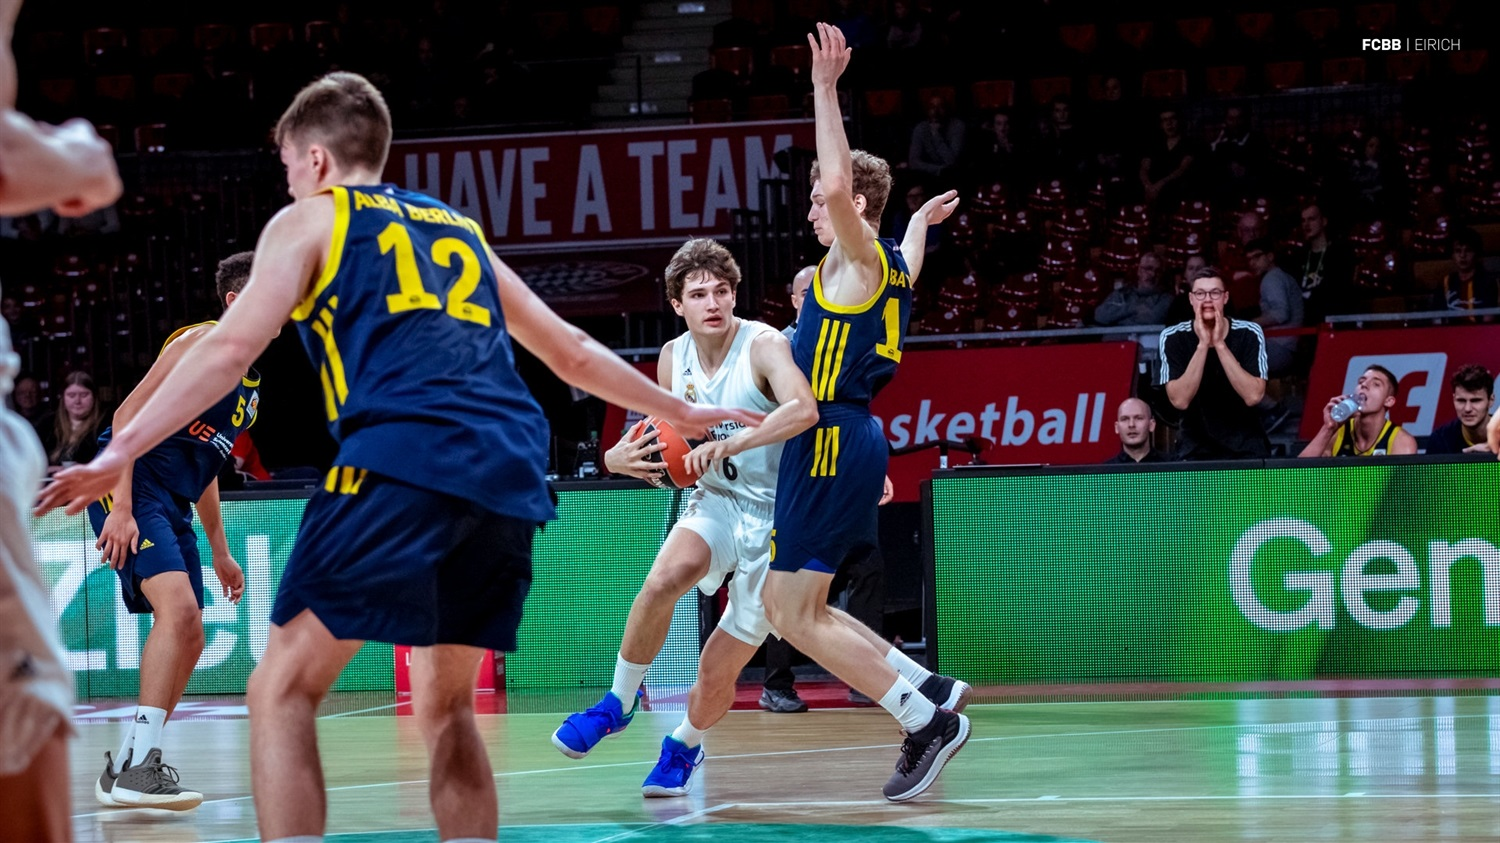 Javier Ramos-Yzquierdo - U18 Real Madrid - ANGT Munich 2019 (photo FCBB - Eirich) JT18